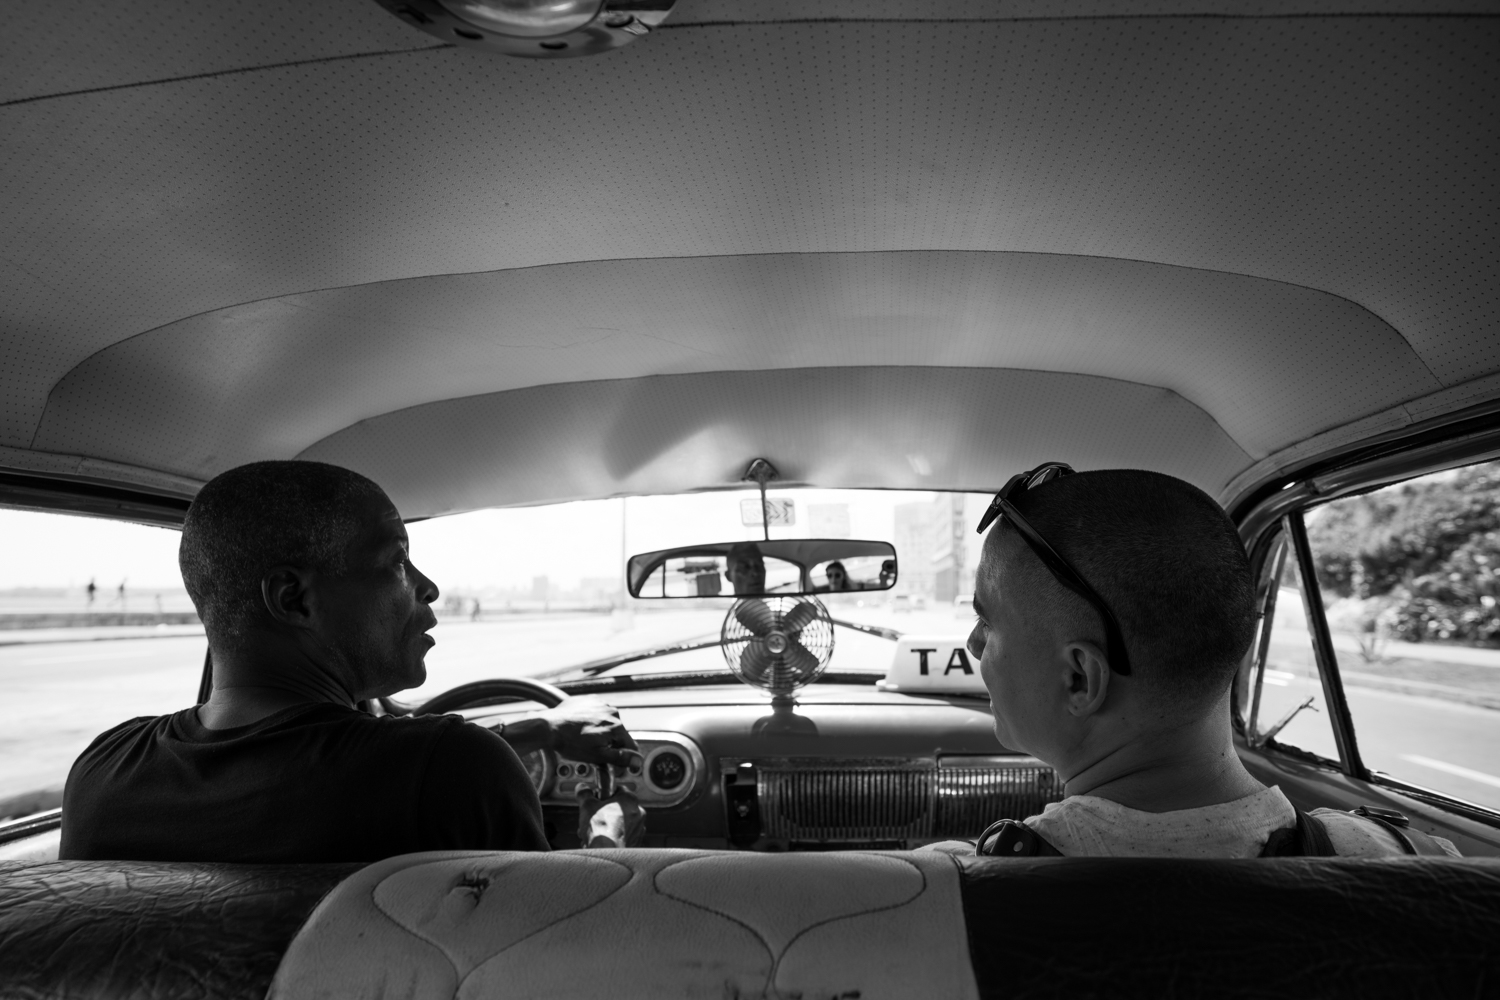 We caught a taxi to Habana Vieja. This is Efrain chatting with the driver.  Sony A7RII, Zeiss Batis 18mm f/2.8 (iso100, f/4, 1/400s)